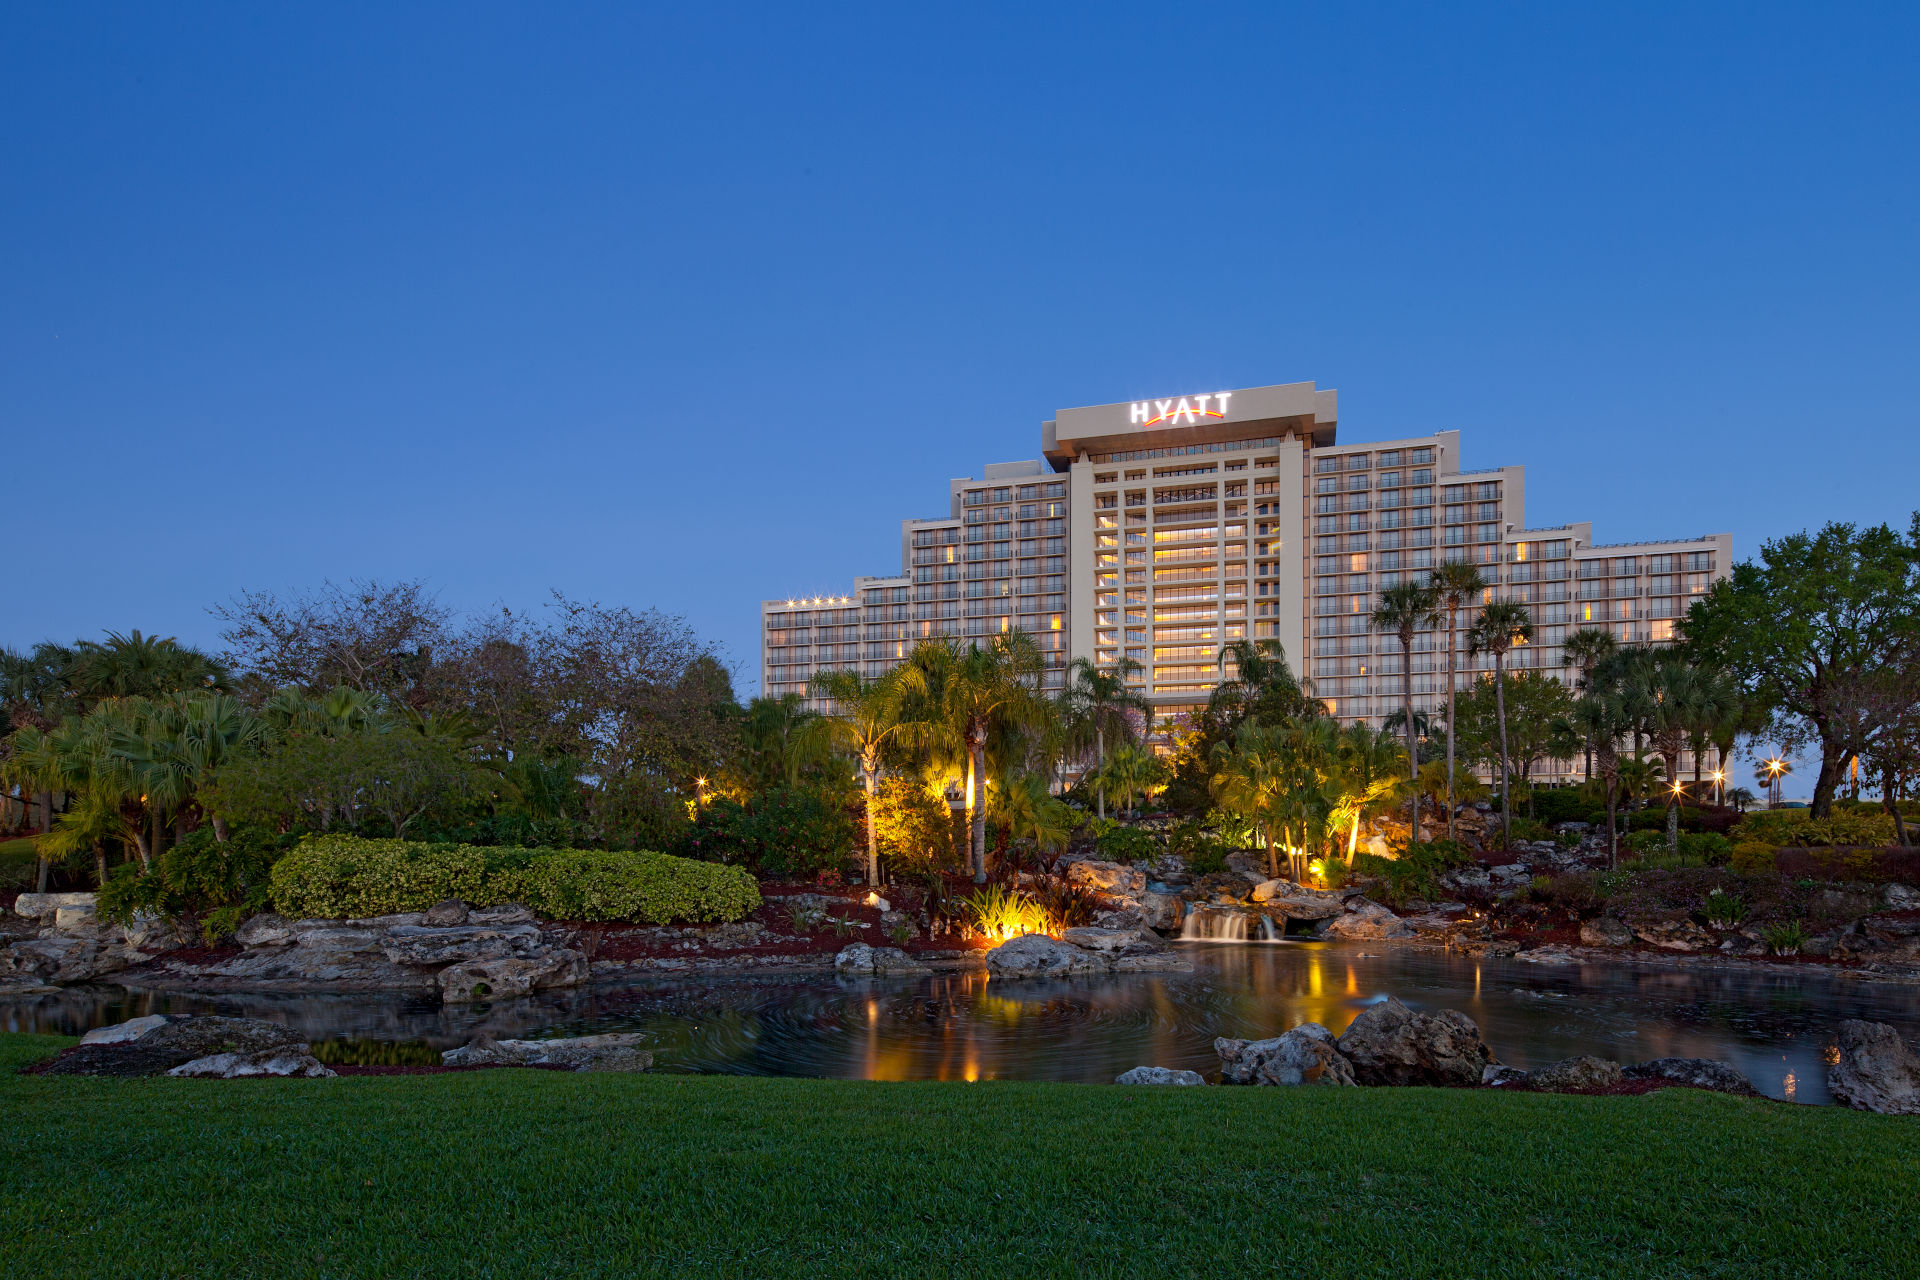 Hyatt Regency Grand Cypress 8